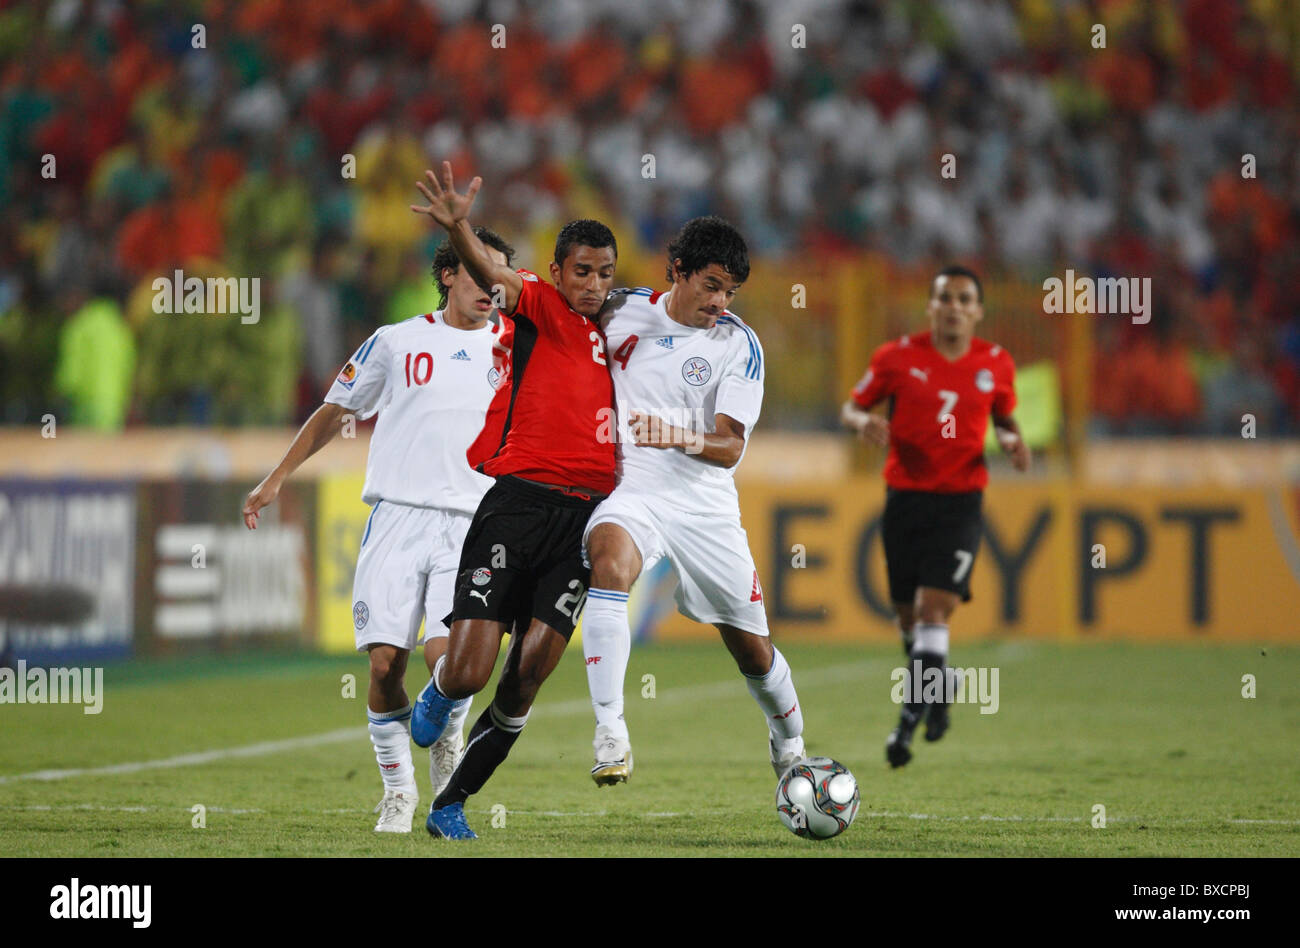 Cesar Benitez of Paraguay (4) takes the ball from Egypt's Hussam Arafat (20) during a 2009 FIFA U-20 World Cup - Stock Image